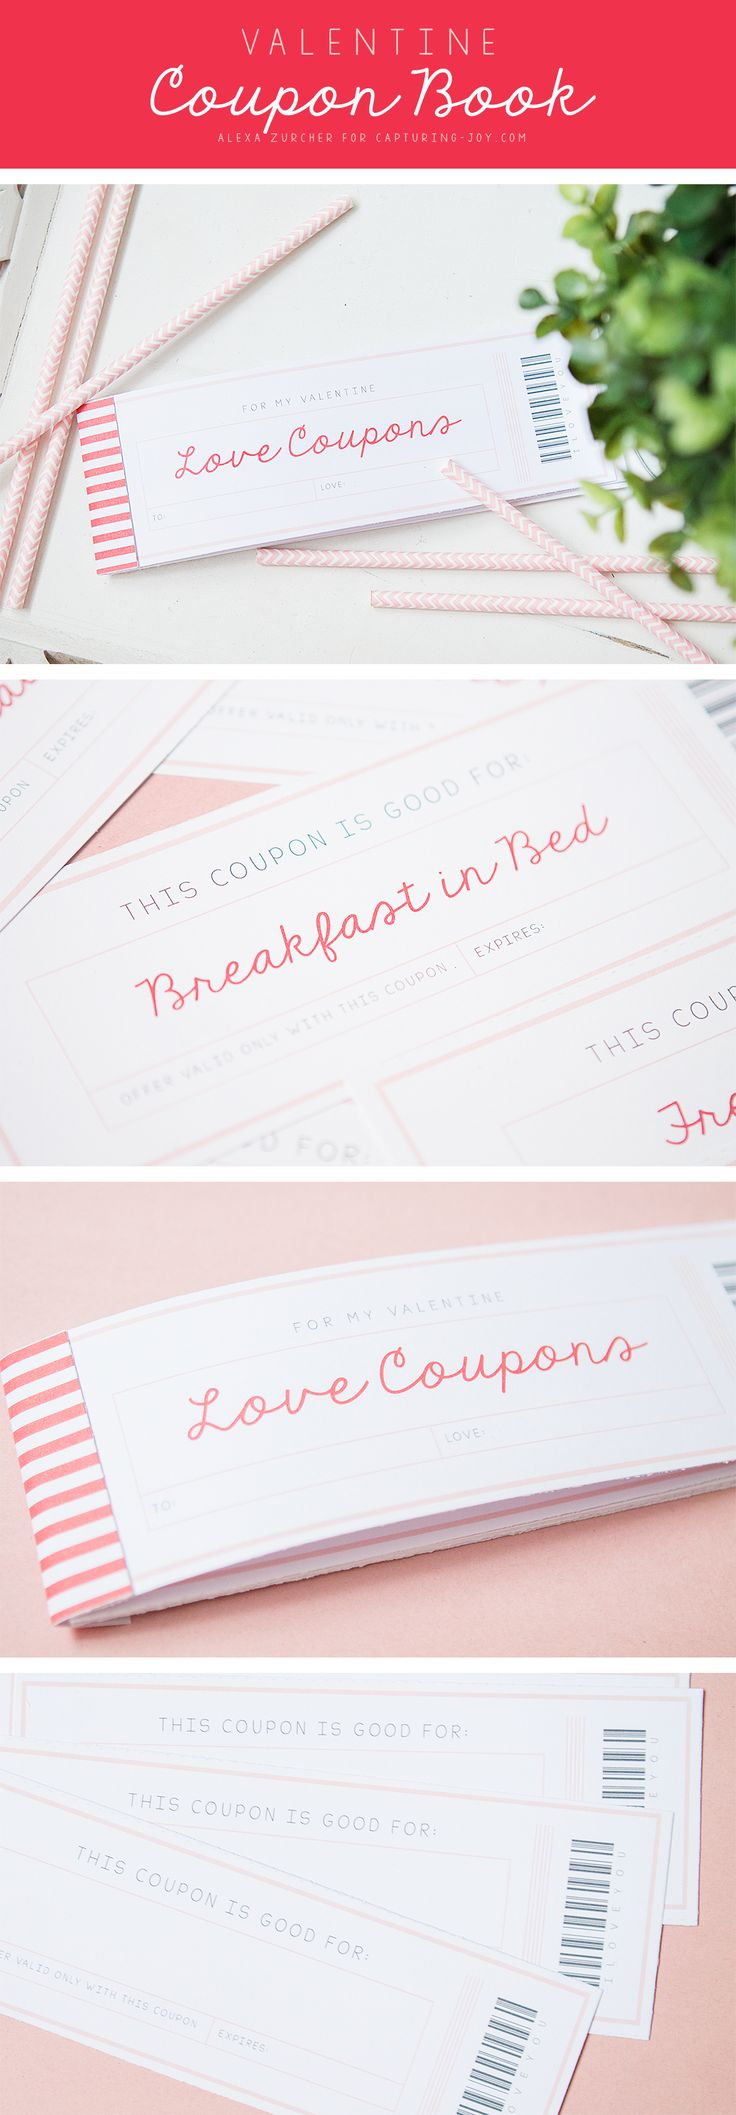 Tons of Valentine's Printables all in One Place - Capturing Joy with Kristen Duke